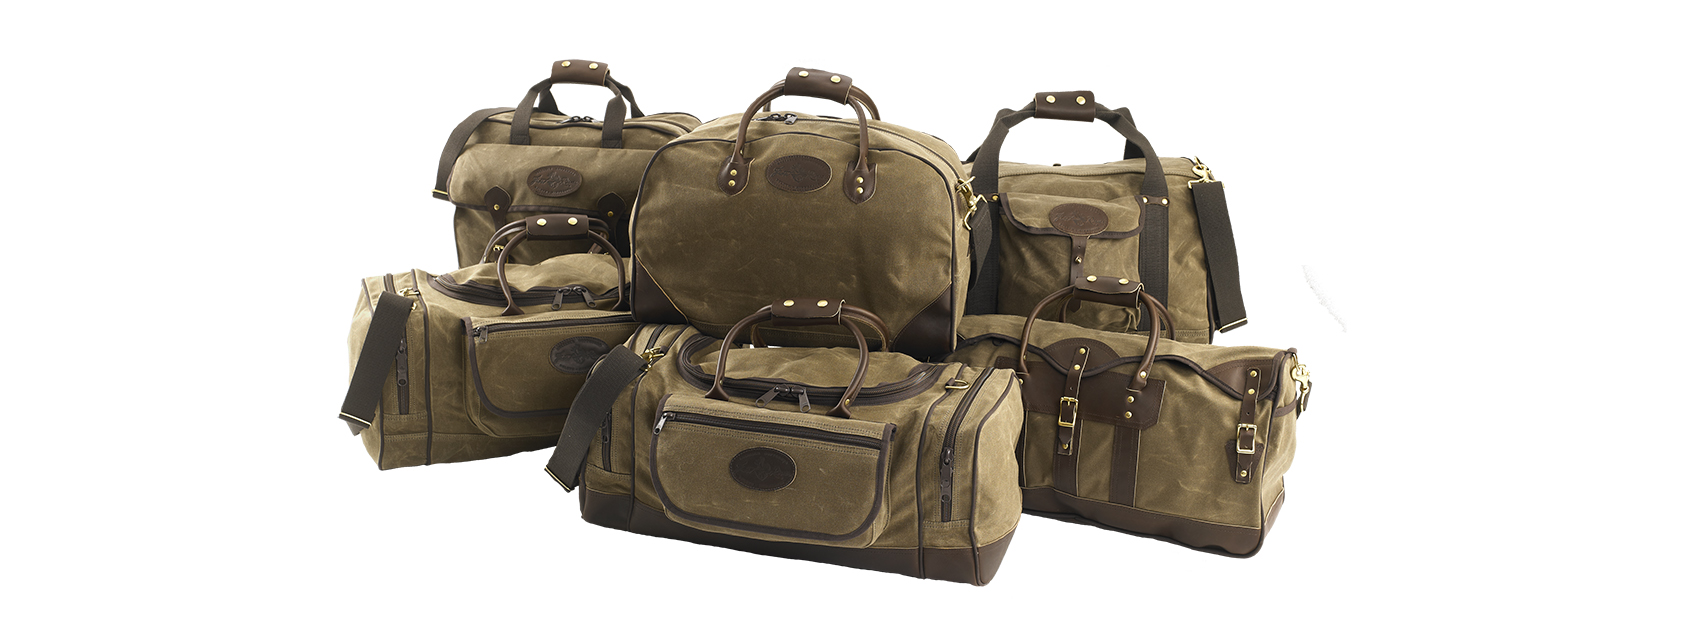 carryon-banner-ii-652-703-802-807-809-713-carry-on-group.jpg